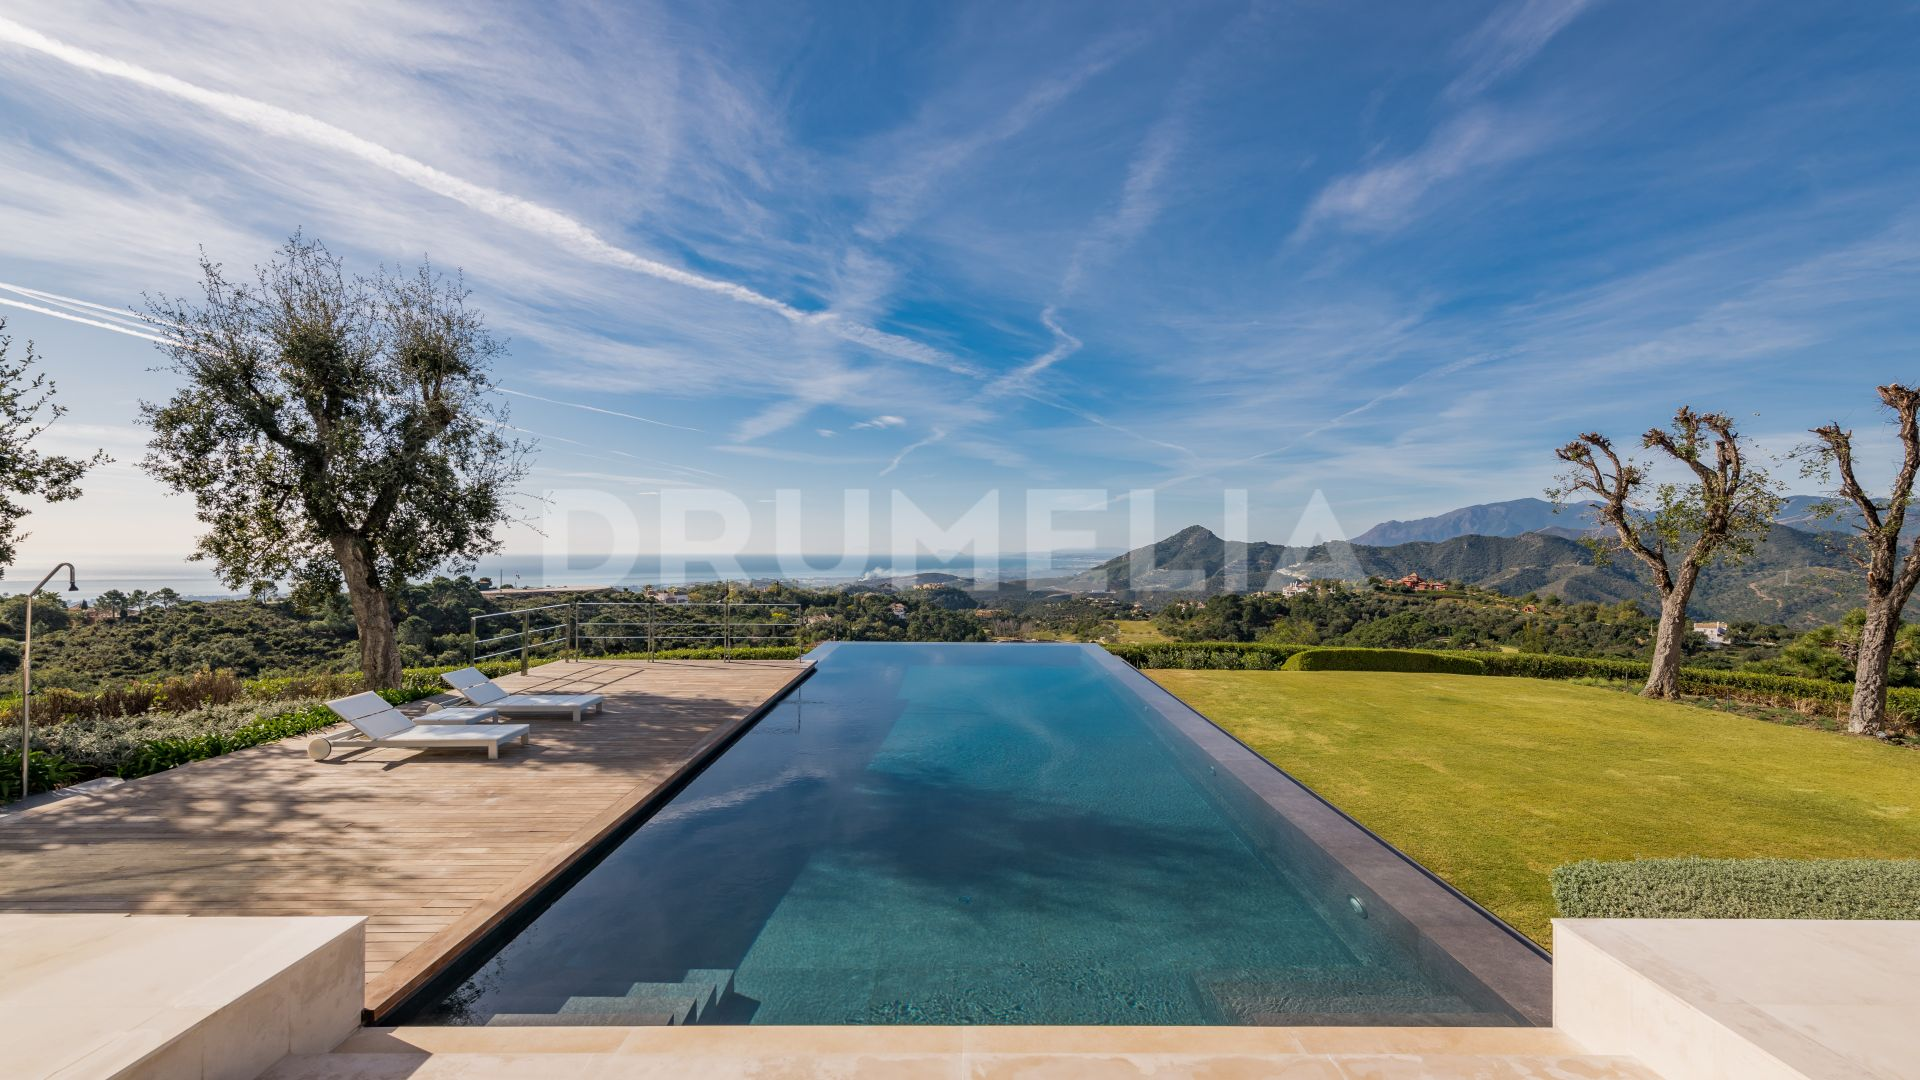 Benahavis, Chic Contemporary Style Luxury Villa with Panoramic Views in Zagaleta, Benahavis